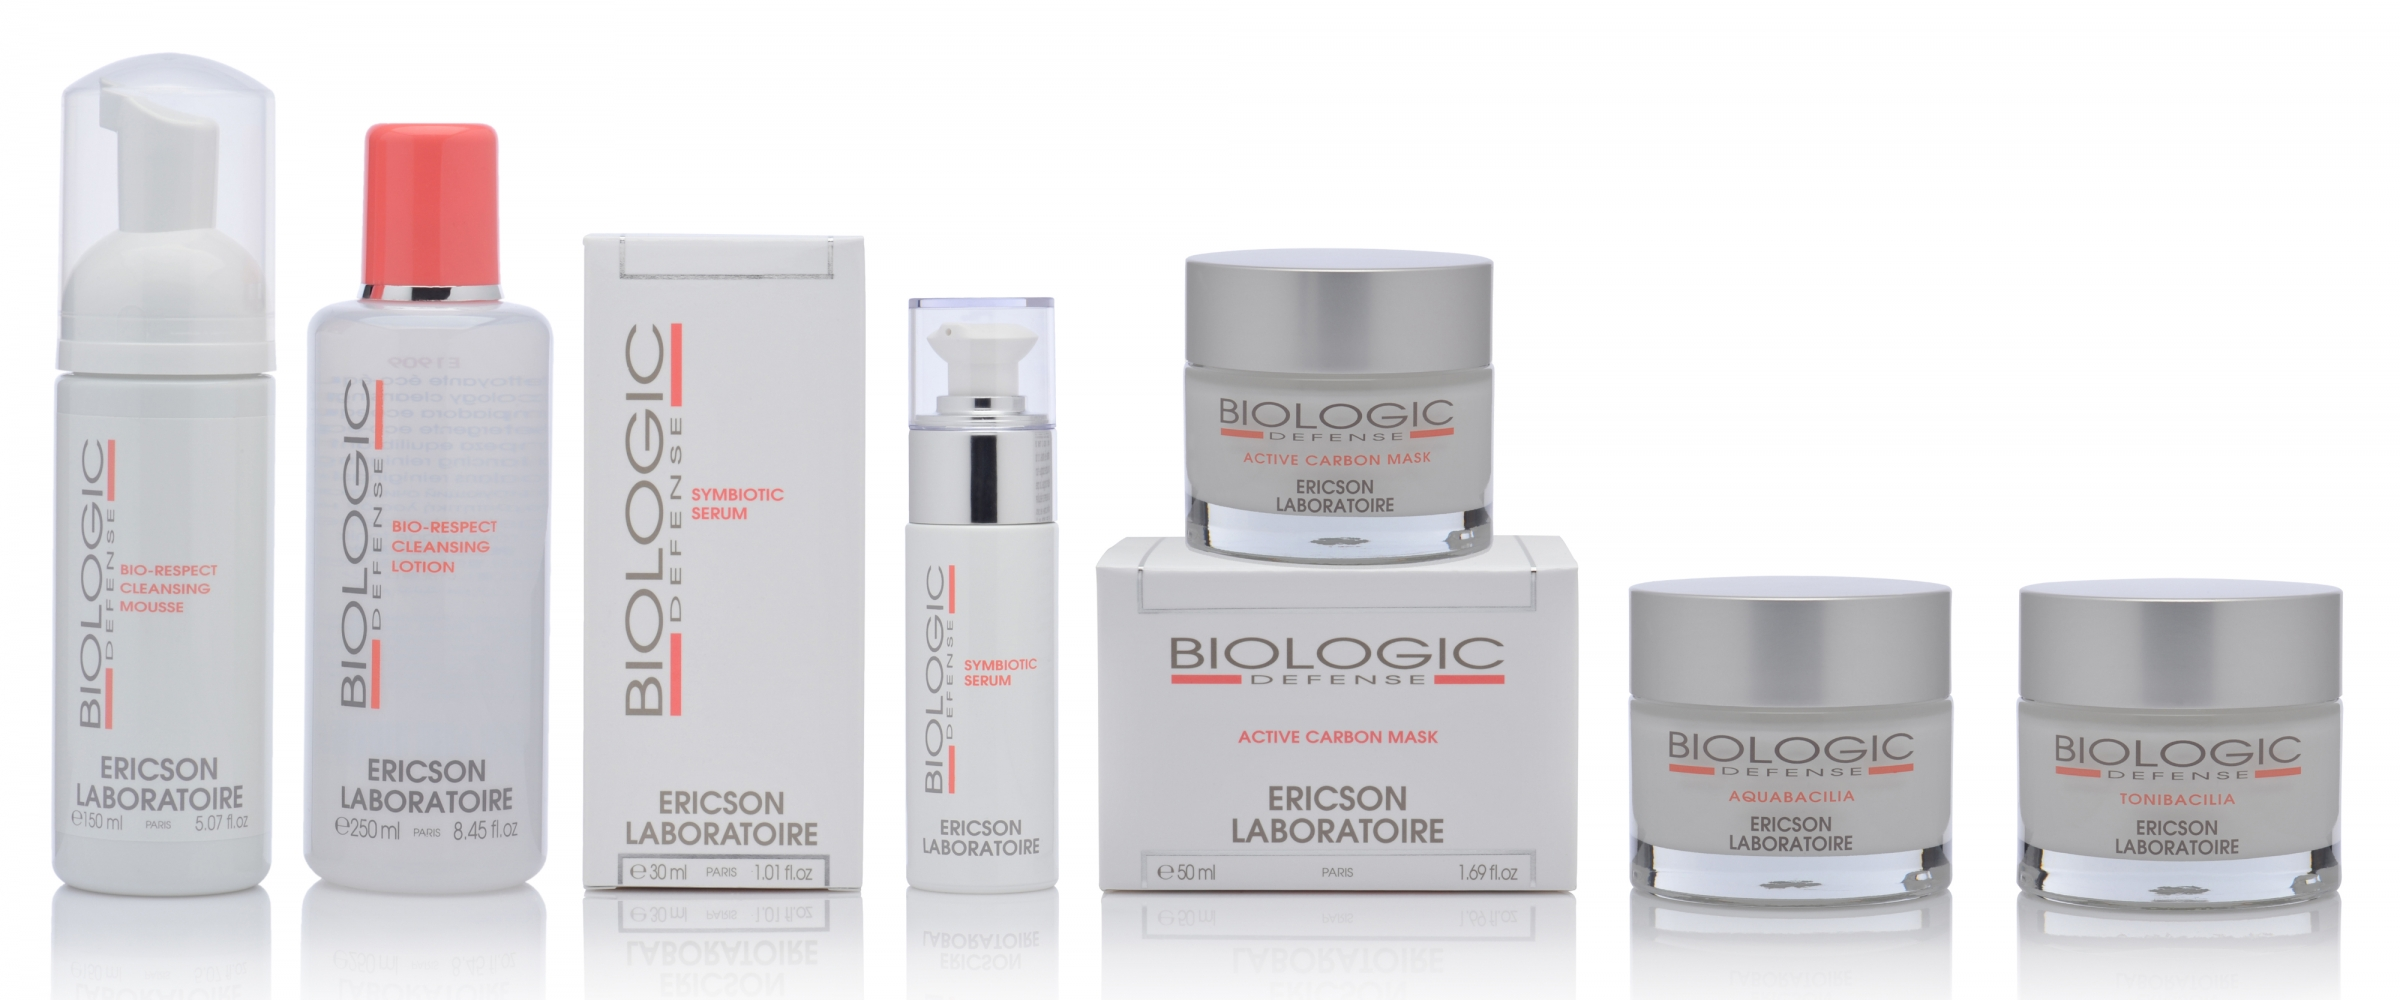 Biologic_Defense - Retail_all_products2